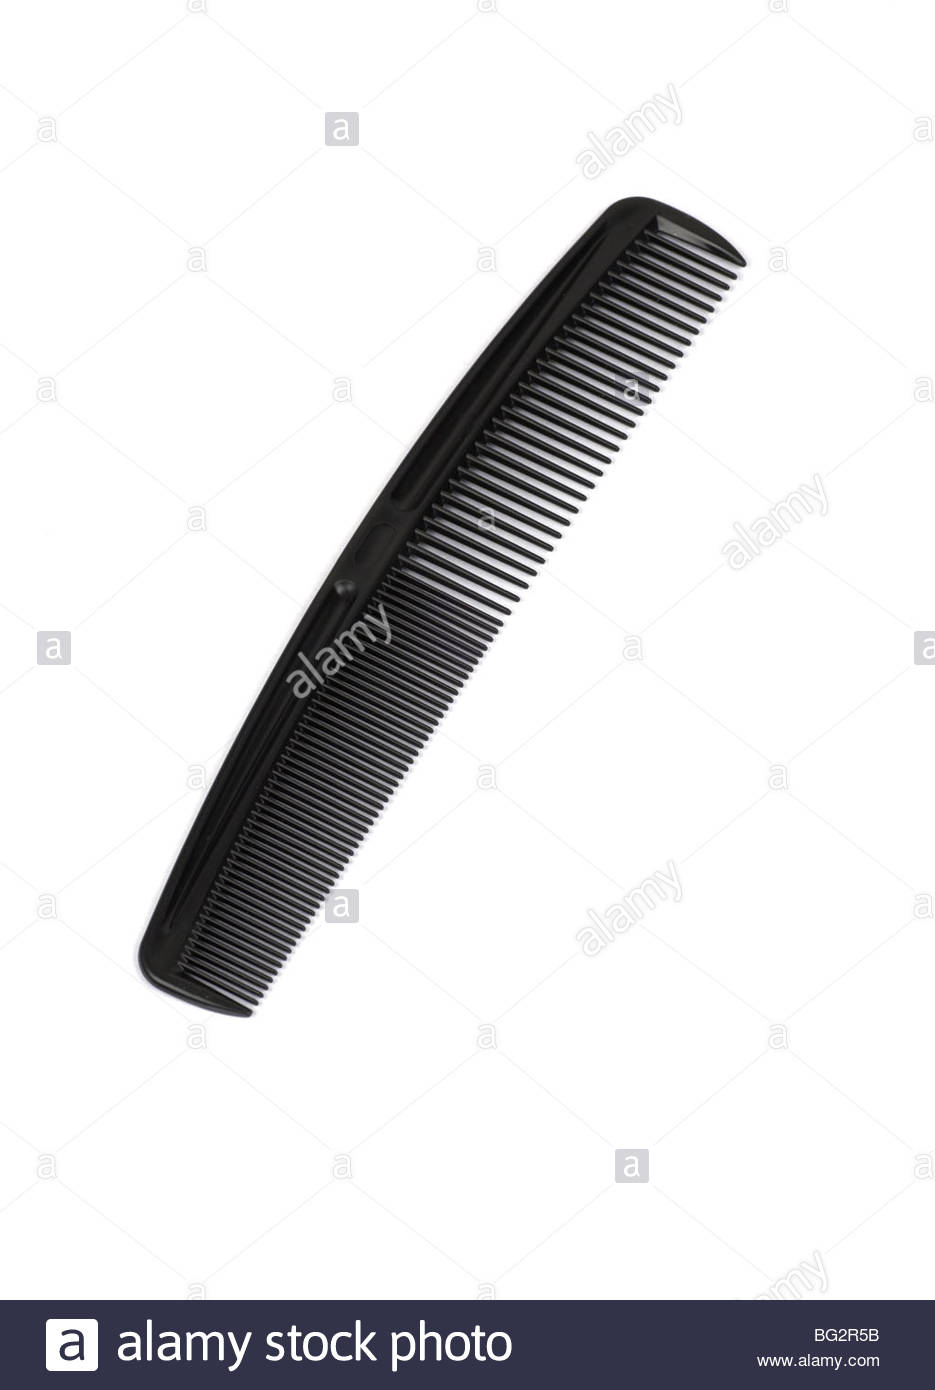 Black hair comb - Stock Image